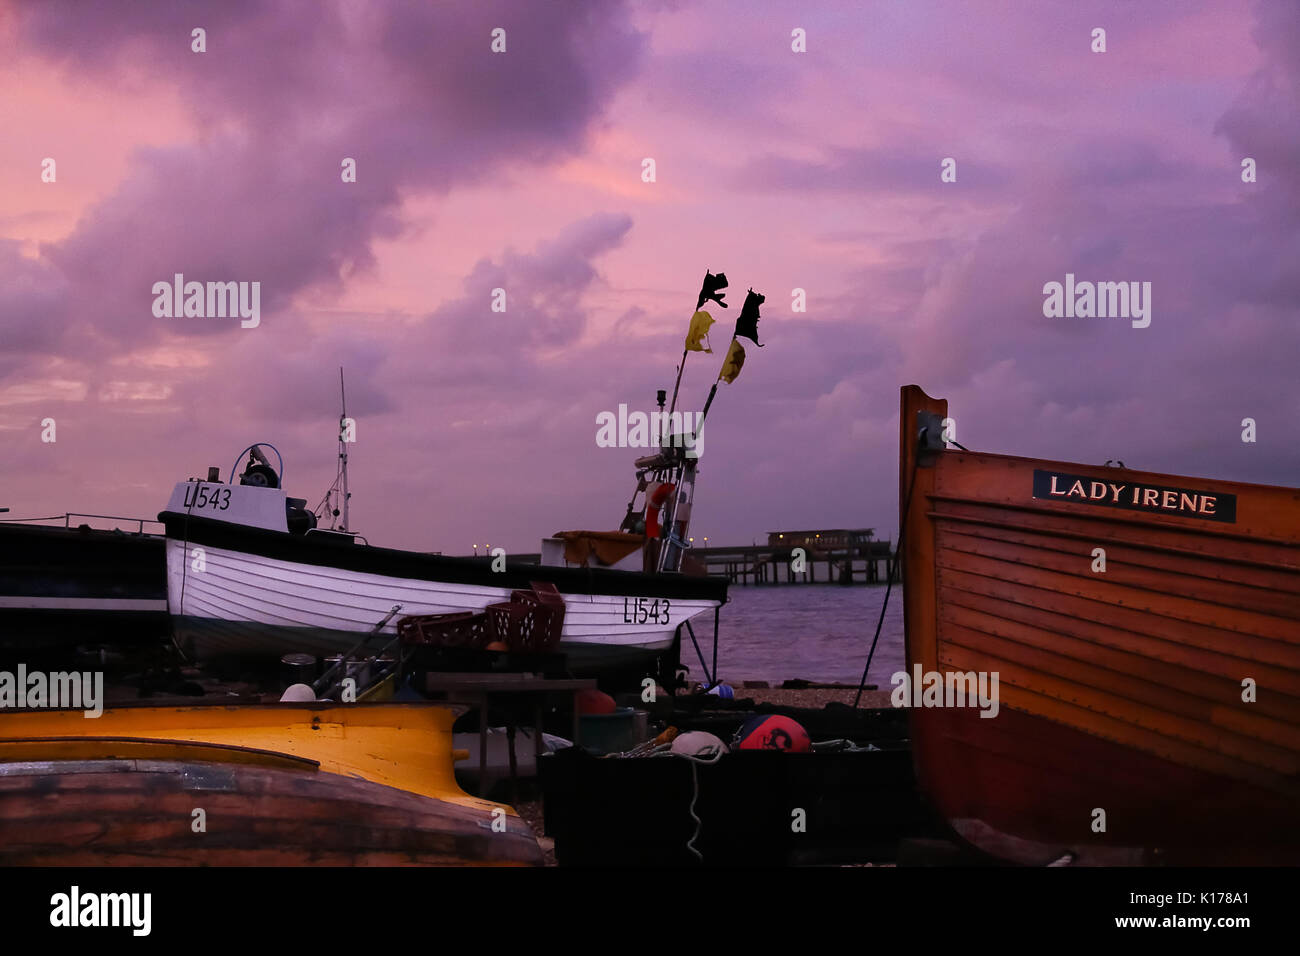 Deal Seafront under Dreamy Skies. - Stock Image